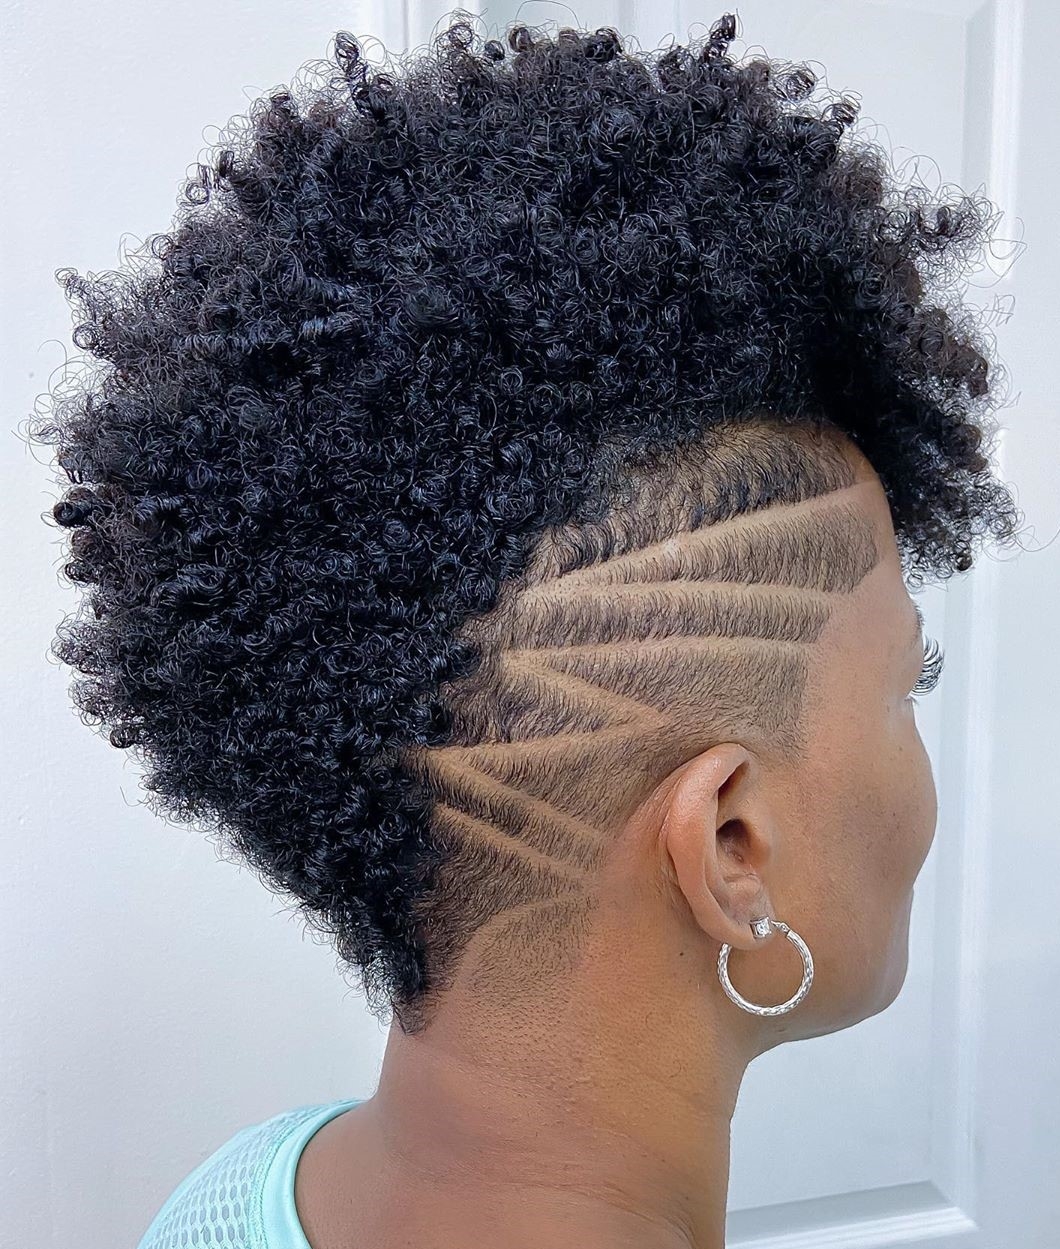 Black Undercut Style for Natural Hair